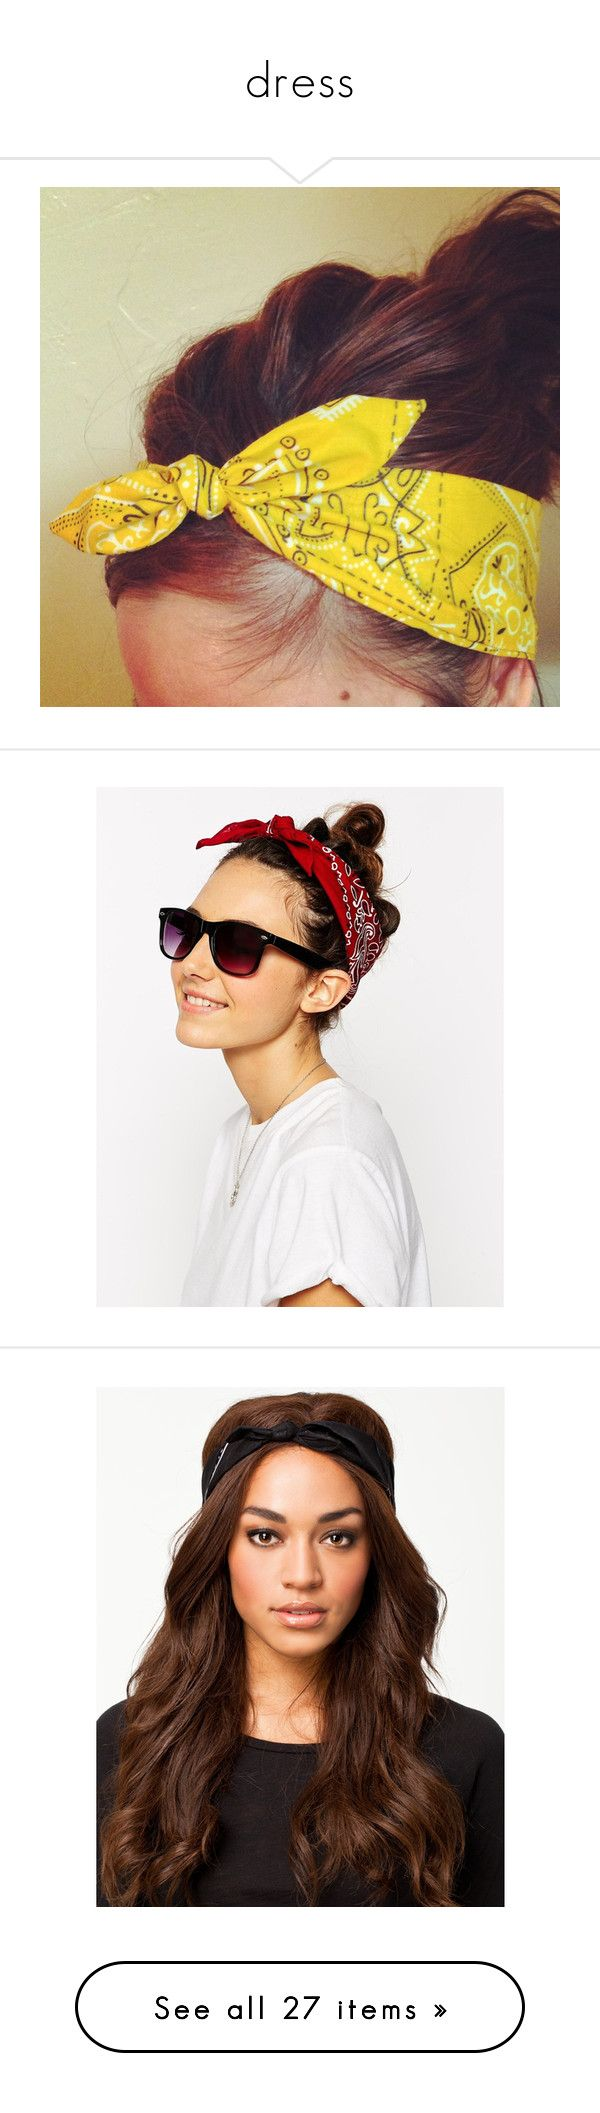 """dress"" by katspanje ❤ liked on Polyvore featuring accessories, hair accessories, hair, headbands, bandanna headband, hair band accessories, bow headwrap, bandana bow headband, head wrap hair accessories and burgundy"